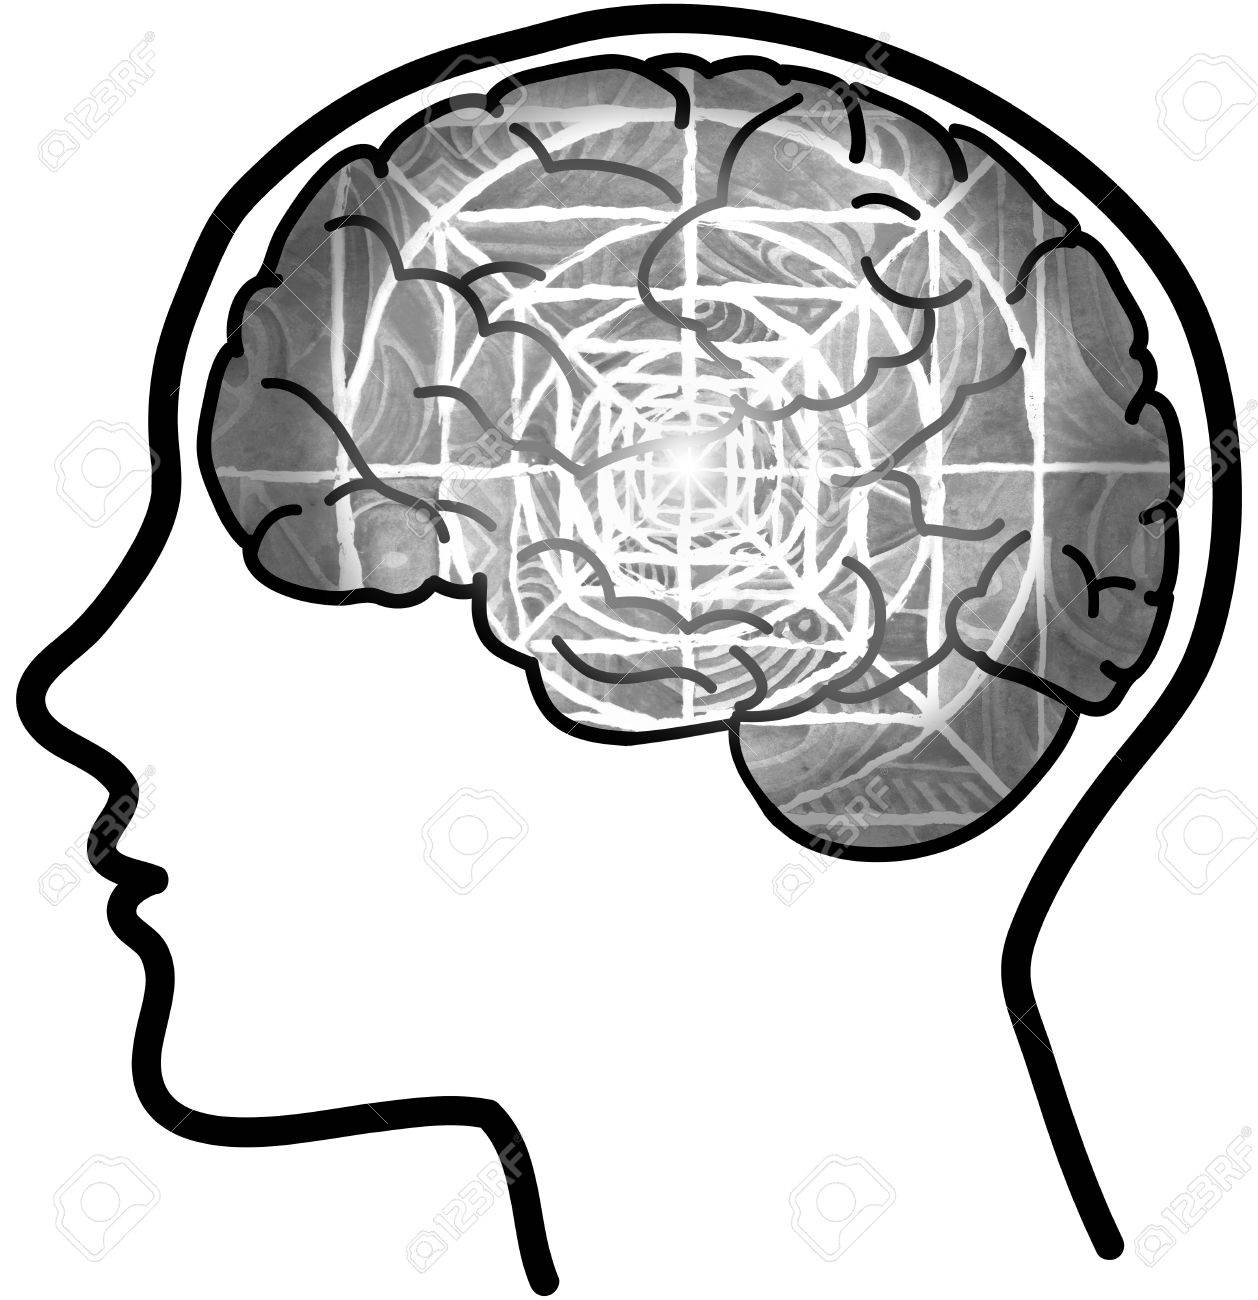 1258x1300 Human Profile And Grey Visible Brain With Concentric Circles Stock